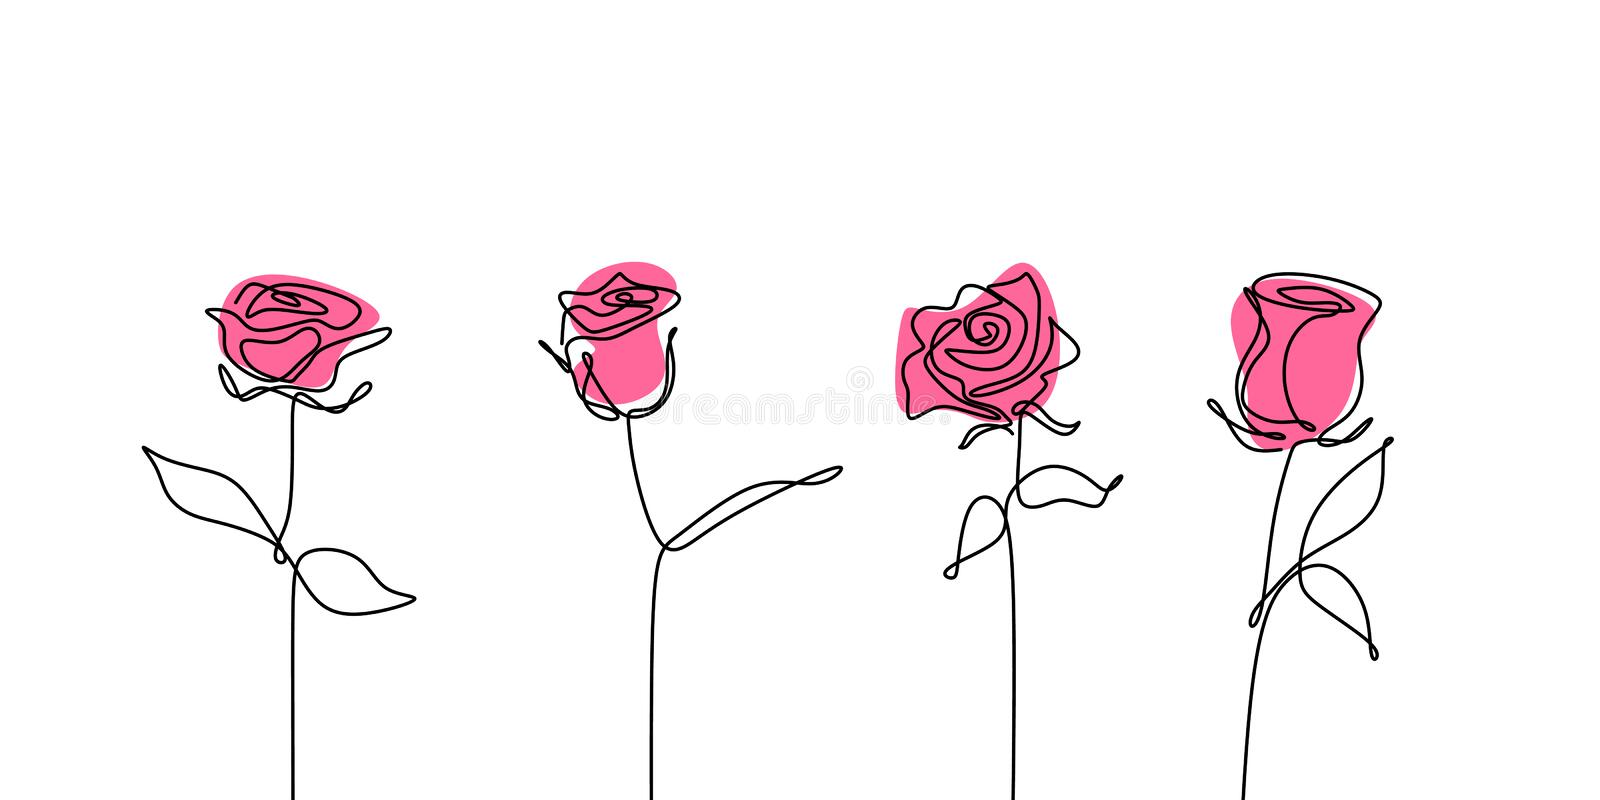 Rose flower continuous line drawing set collections royalty free illustration